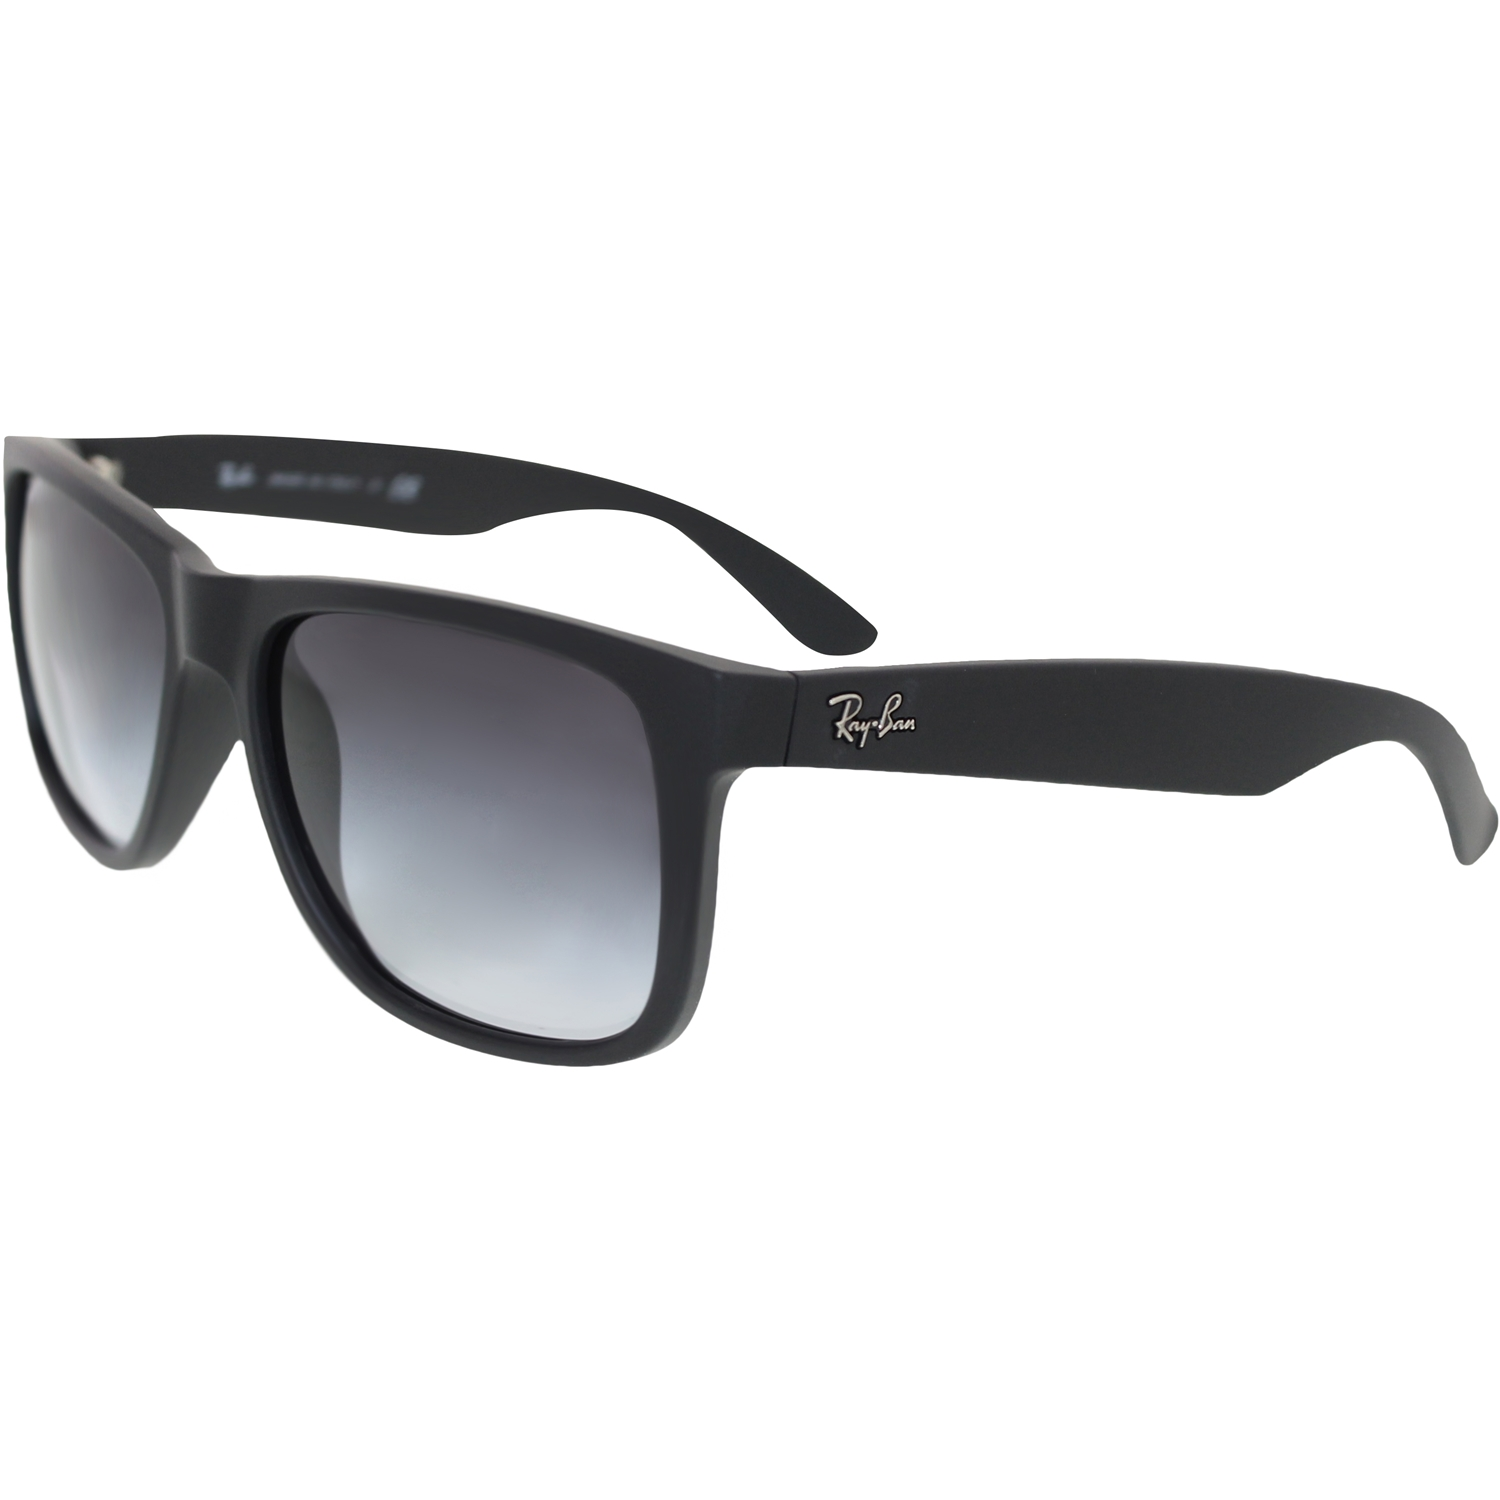 ray ban polarized sunglasses walmart  ray ban men's justin rb4165 601/8g 55 black wayfarer sunglasses